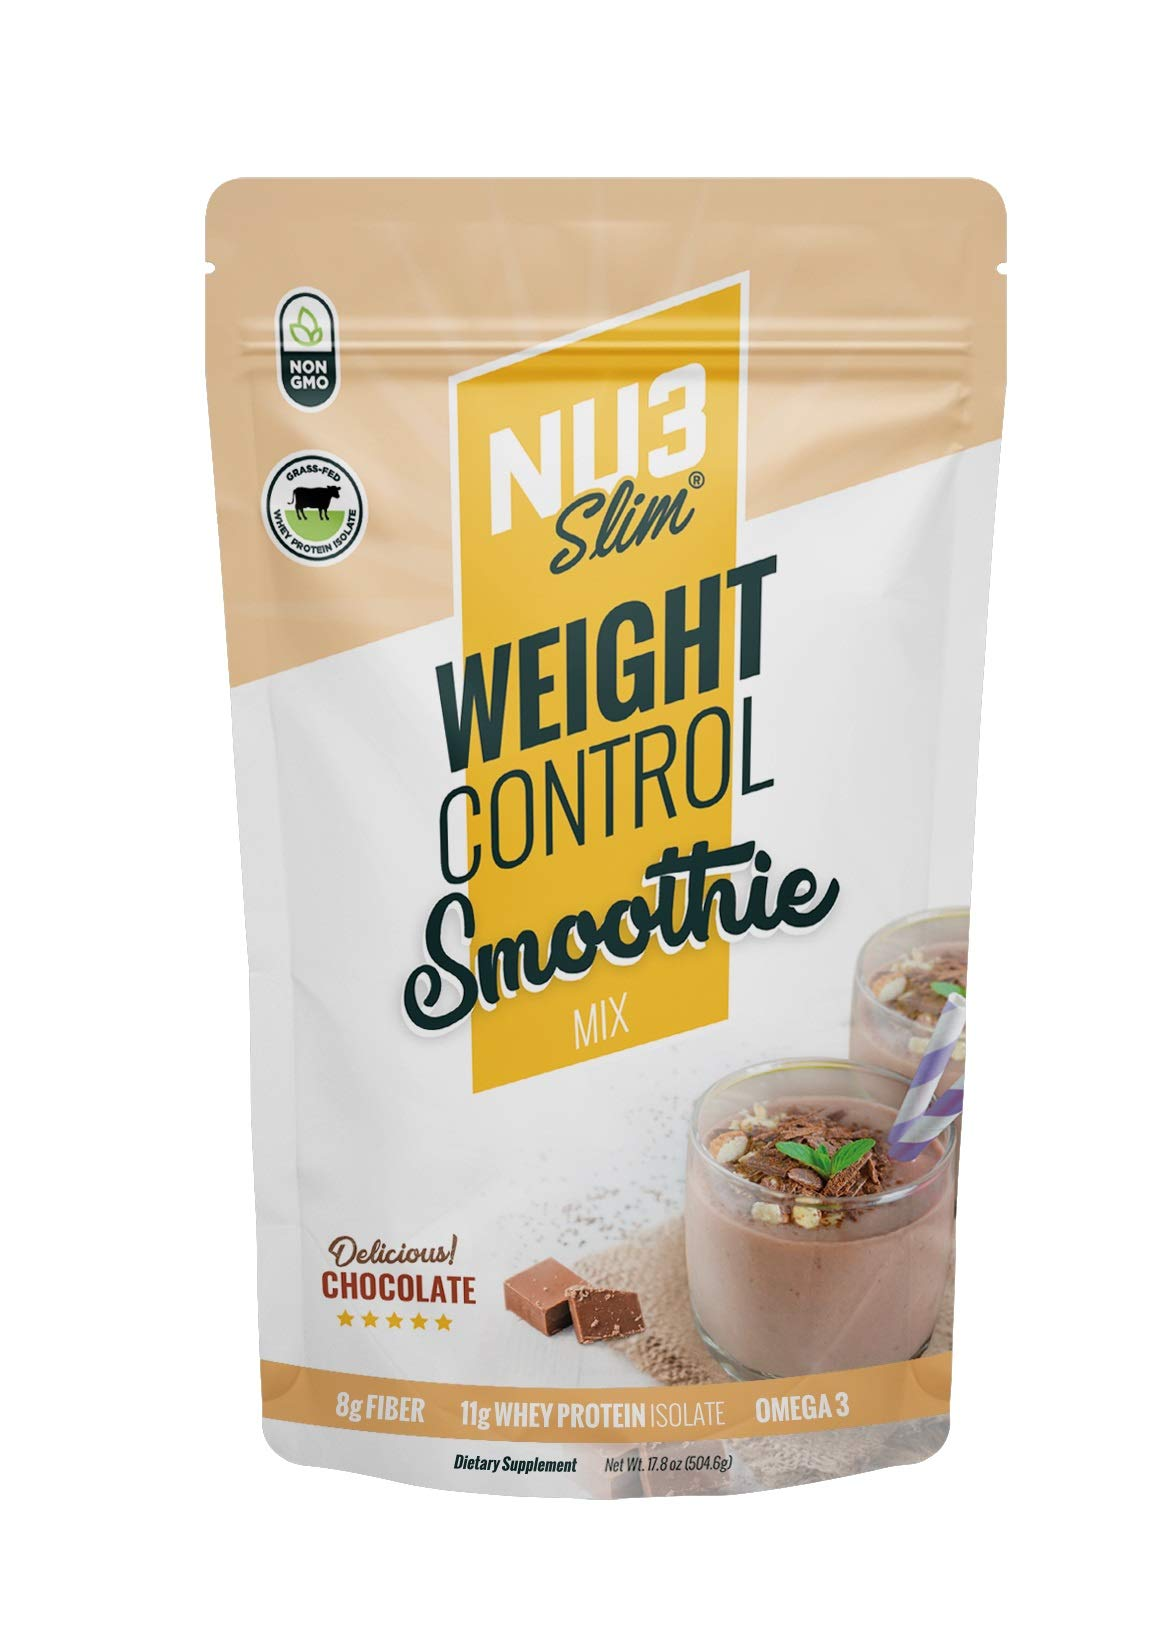 NU3 Slim - The Weight Control Smoohie - Whey Protein Isolate GRASS FED,  Fiber Mix